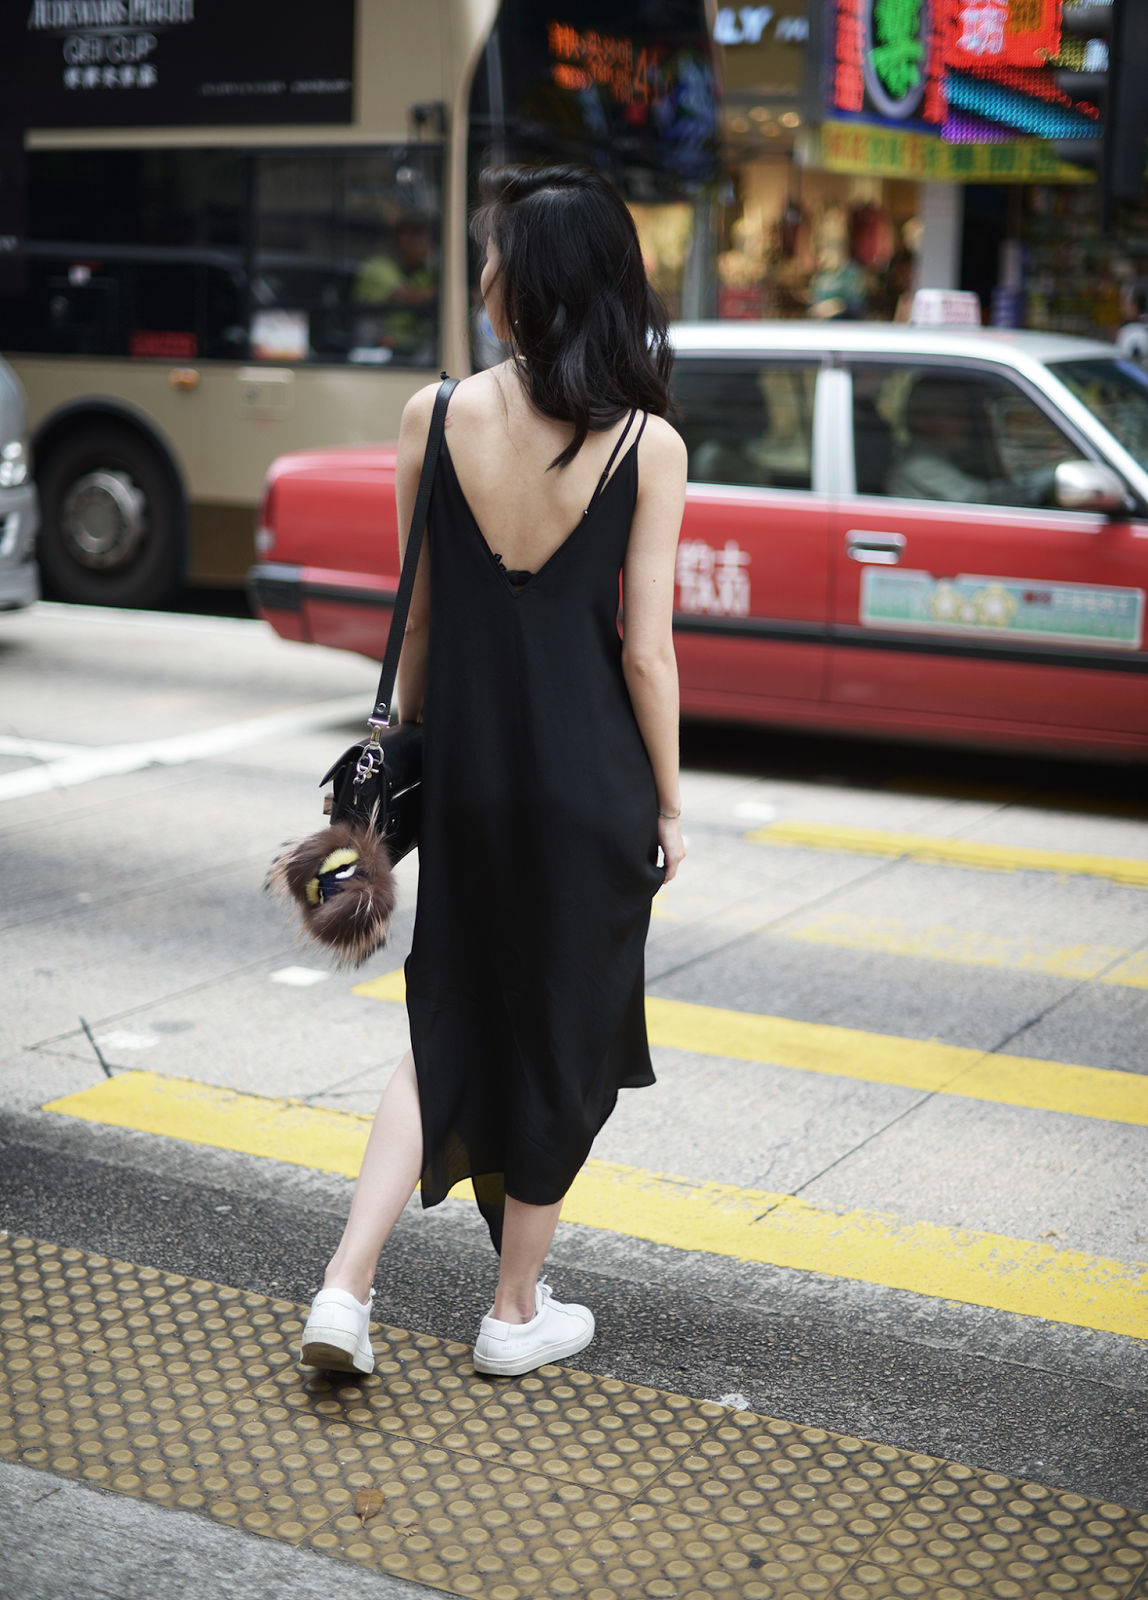 Asymmetric Slip Dress by Raey in Hong Kong   Raw   FOREVERVANNY.com 68f5f2eb0ea1e